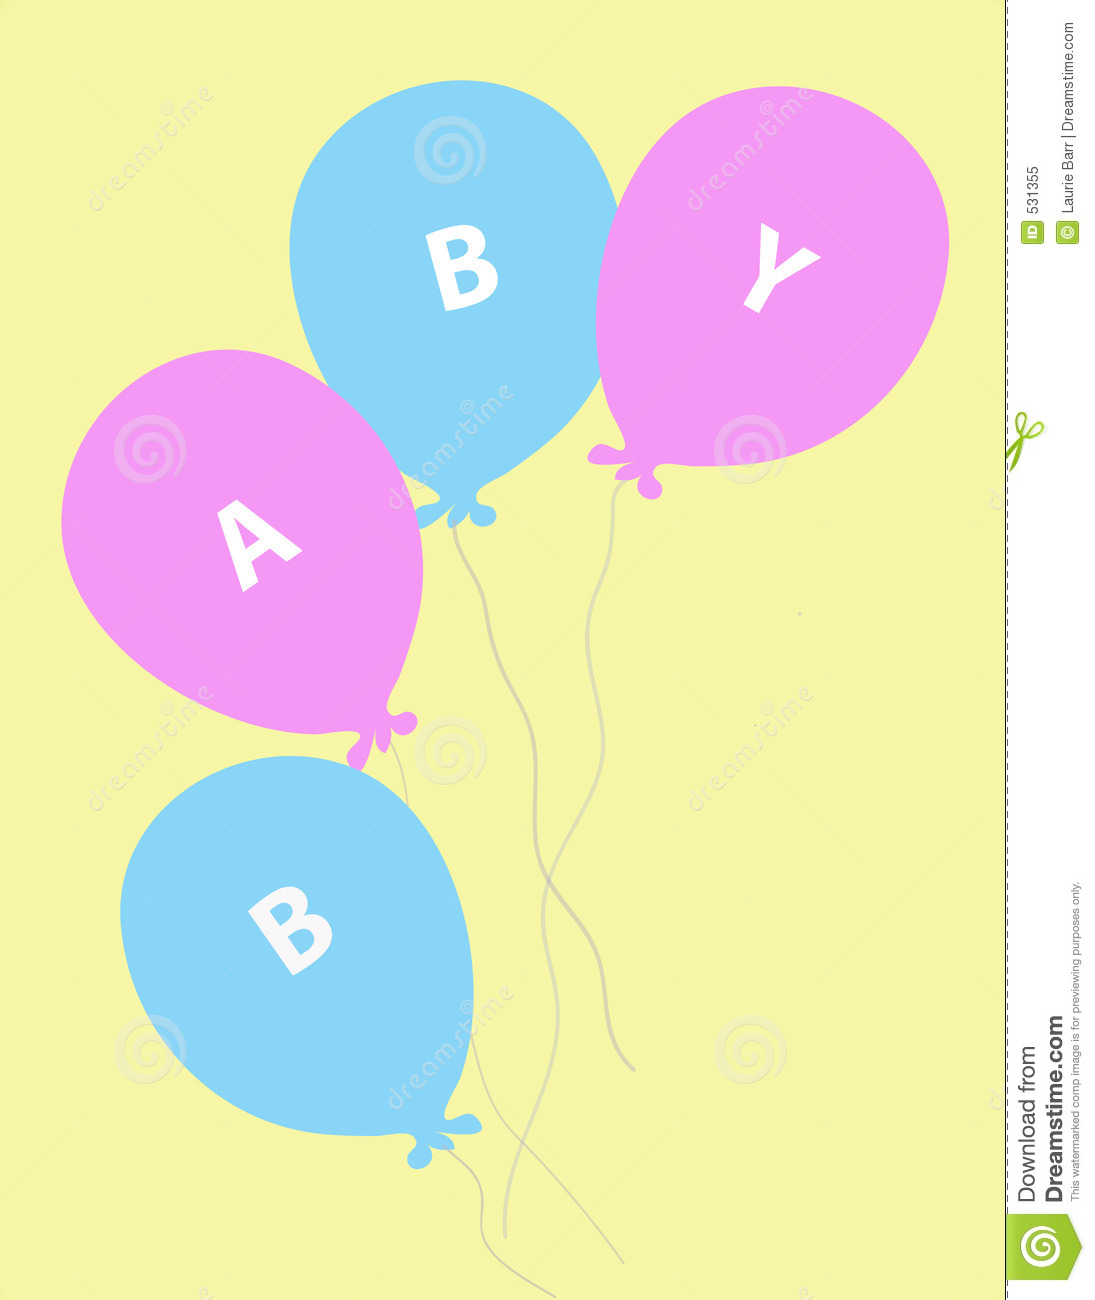 Baby Balloons Royalty Free Stock Photo - Image: 531355